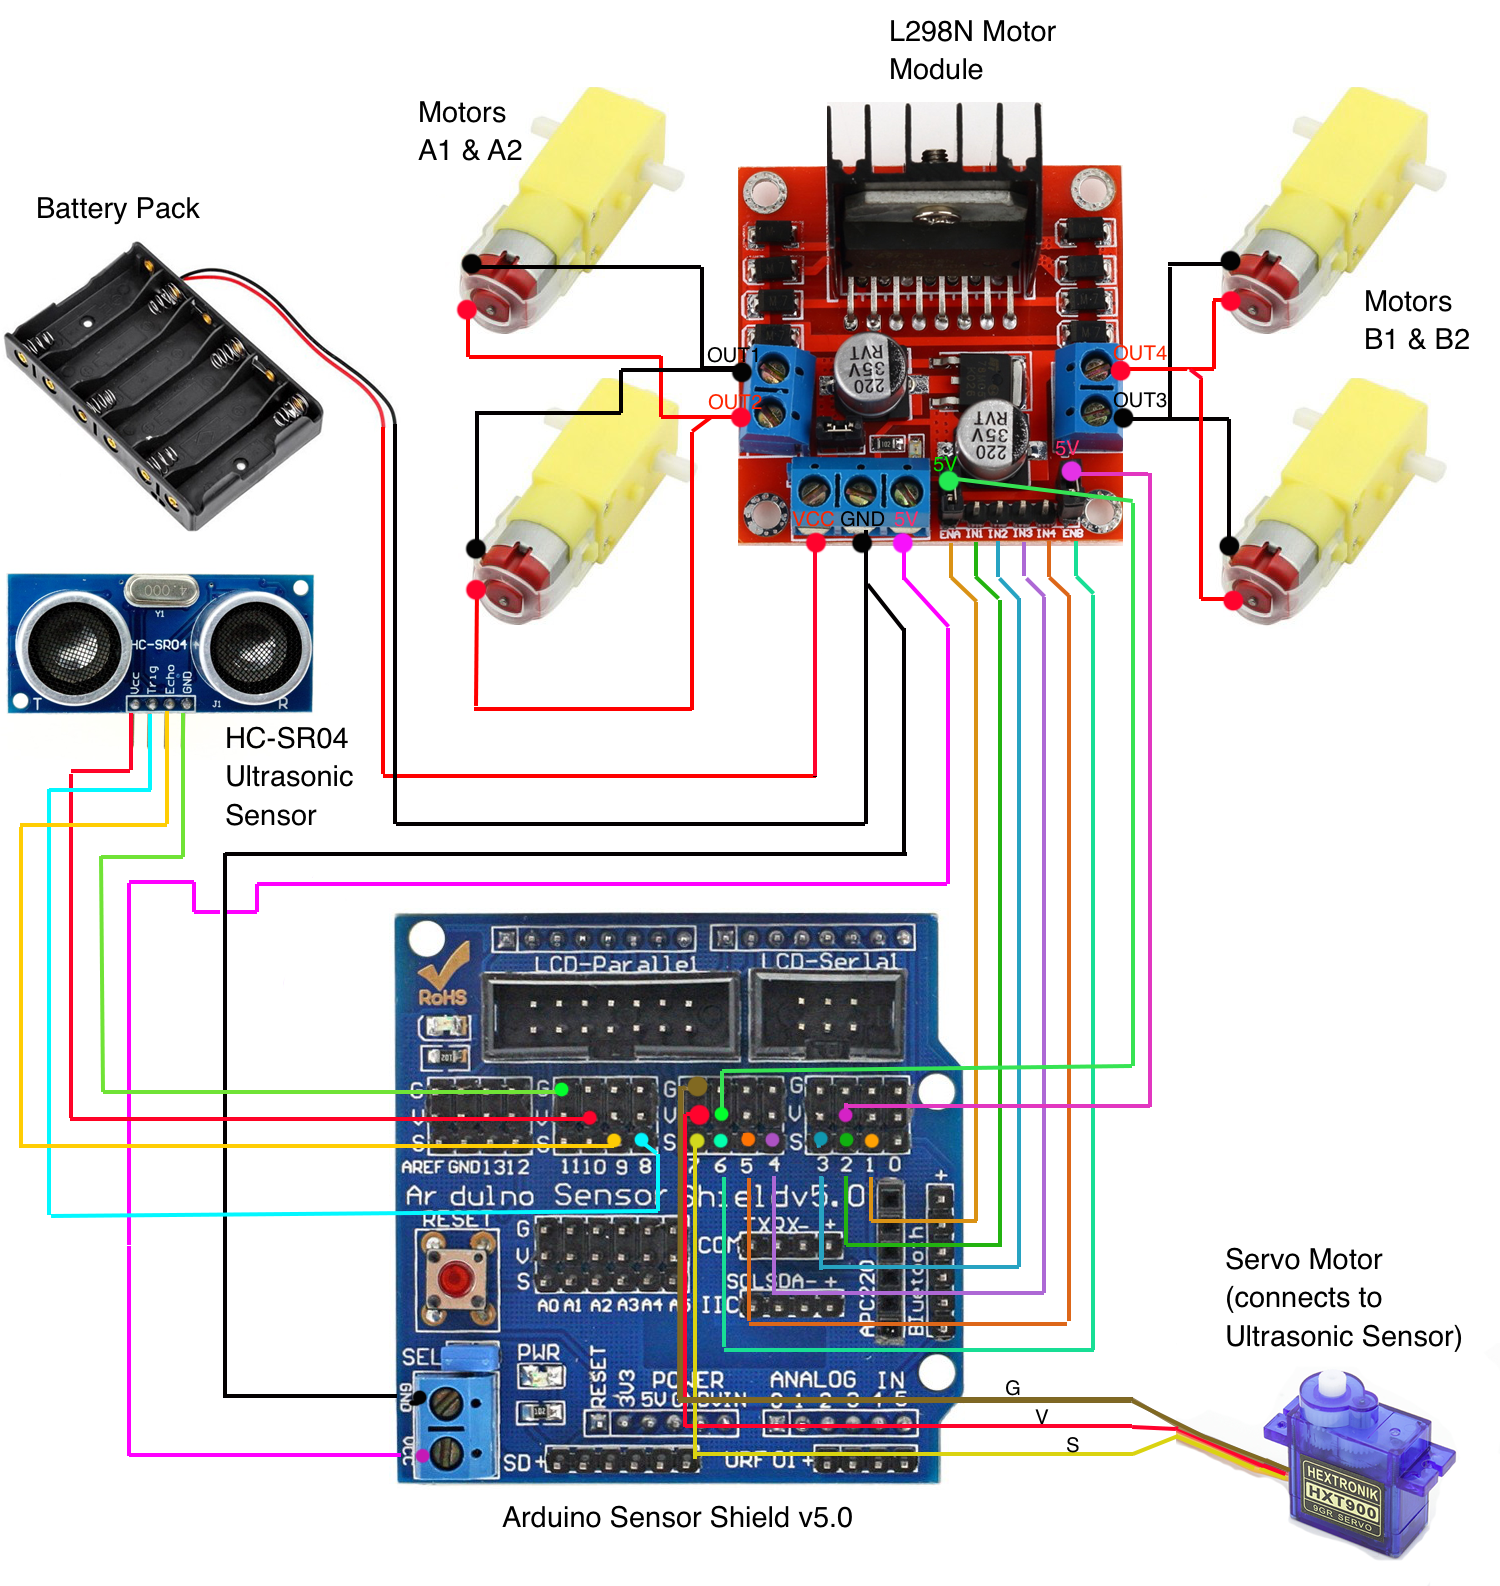 Building A 4wd Autonomous Car With Arduino Codemahal 4x4 Wiring Diagram Click For Larger Image